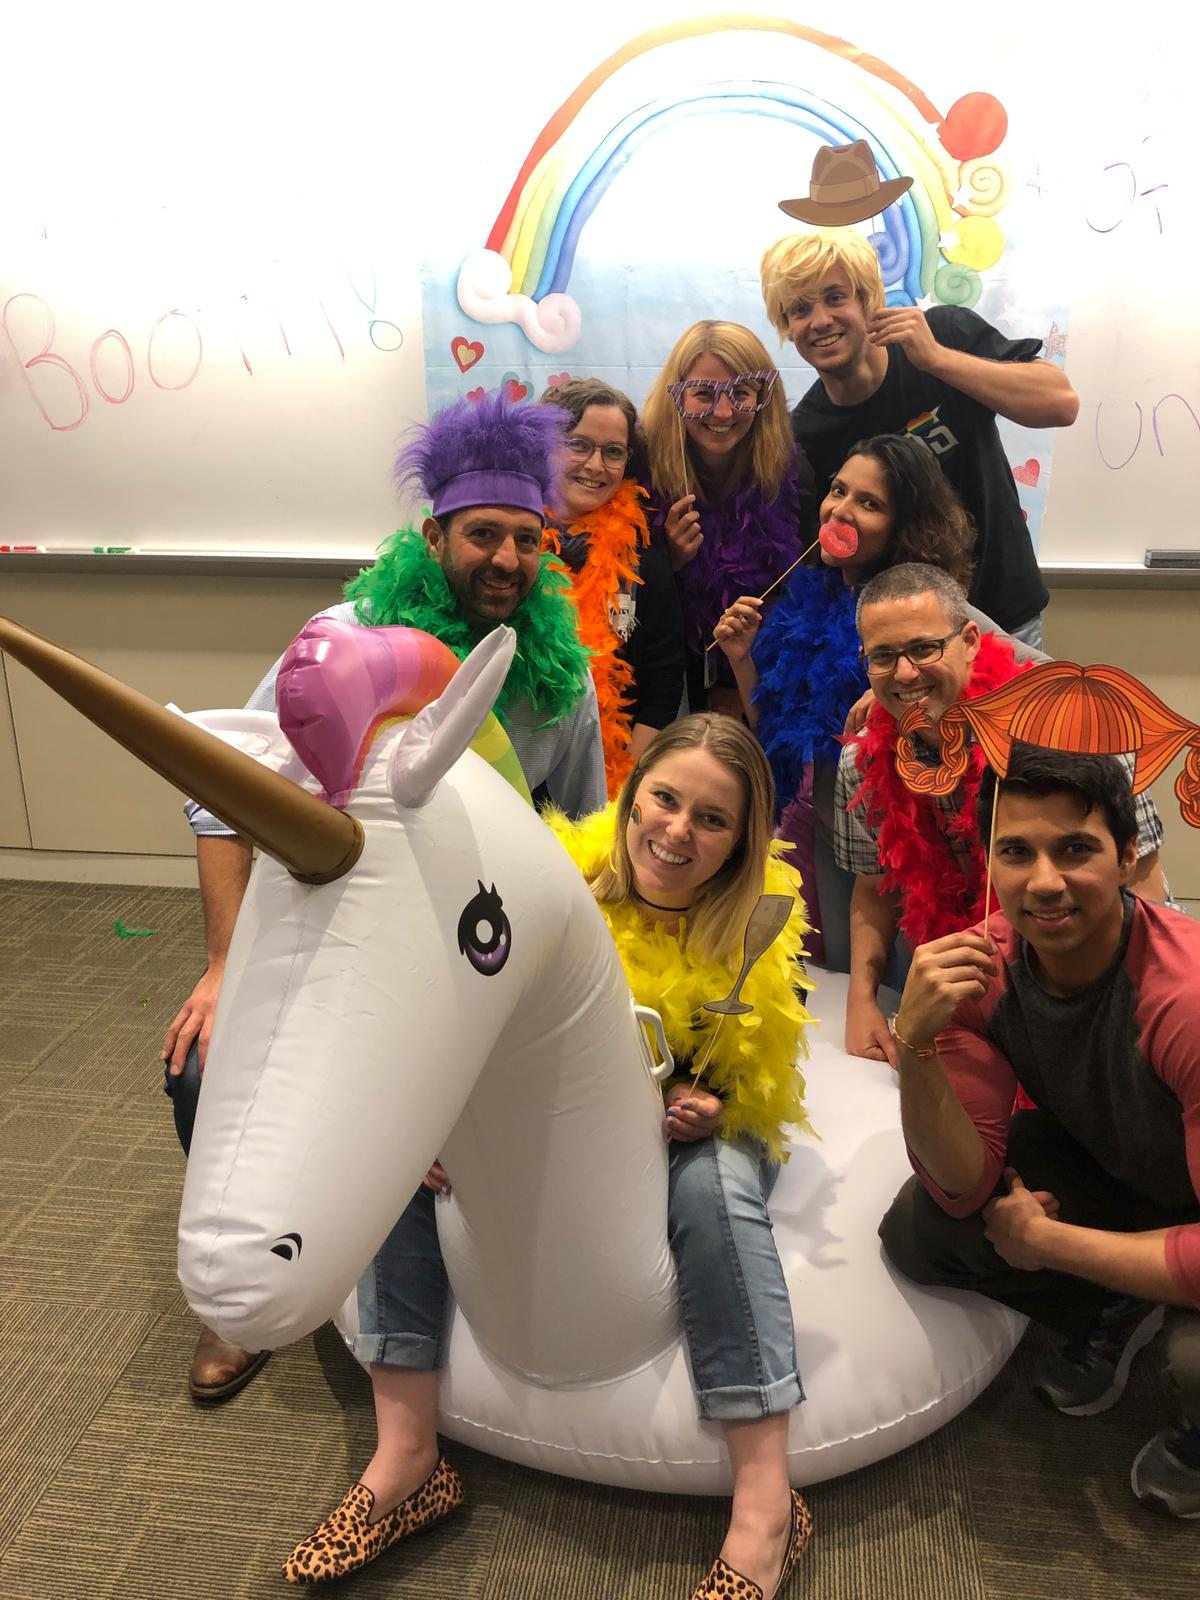 Lab photo with our honorary member Jamie the unicorn